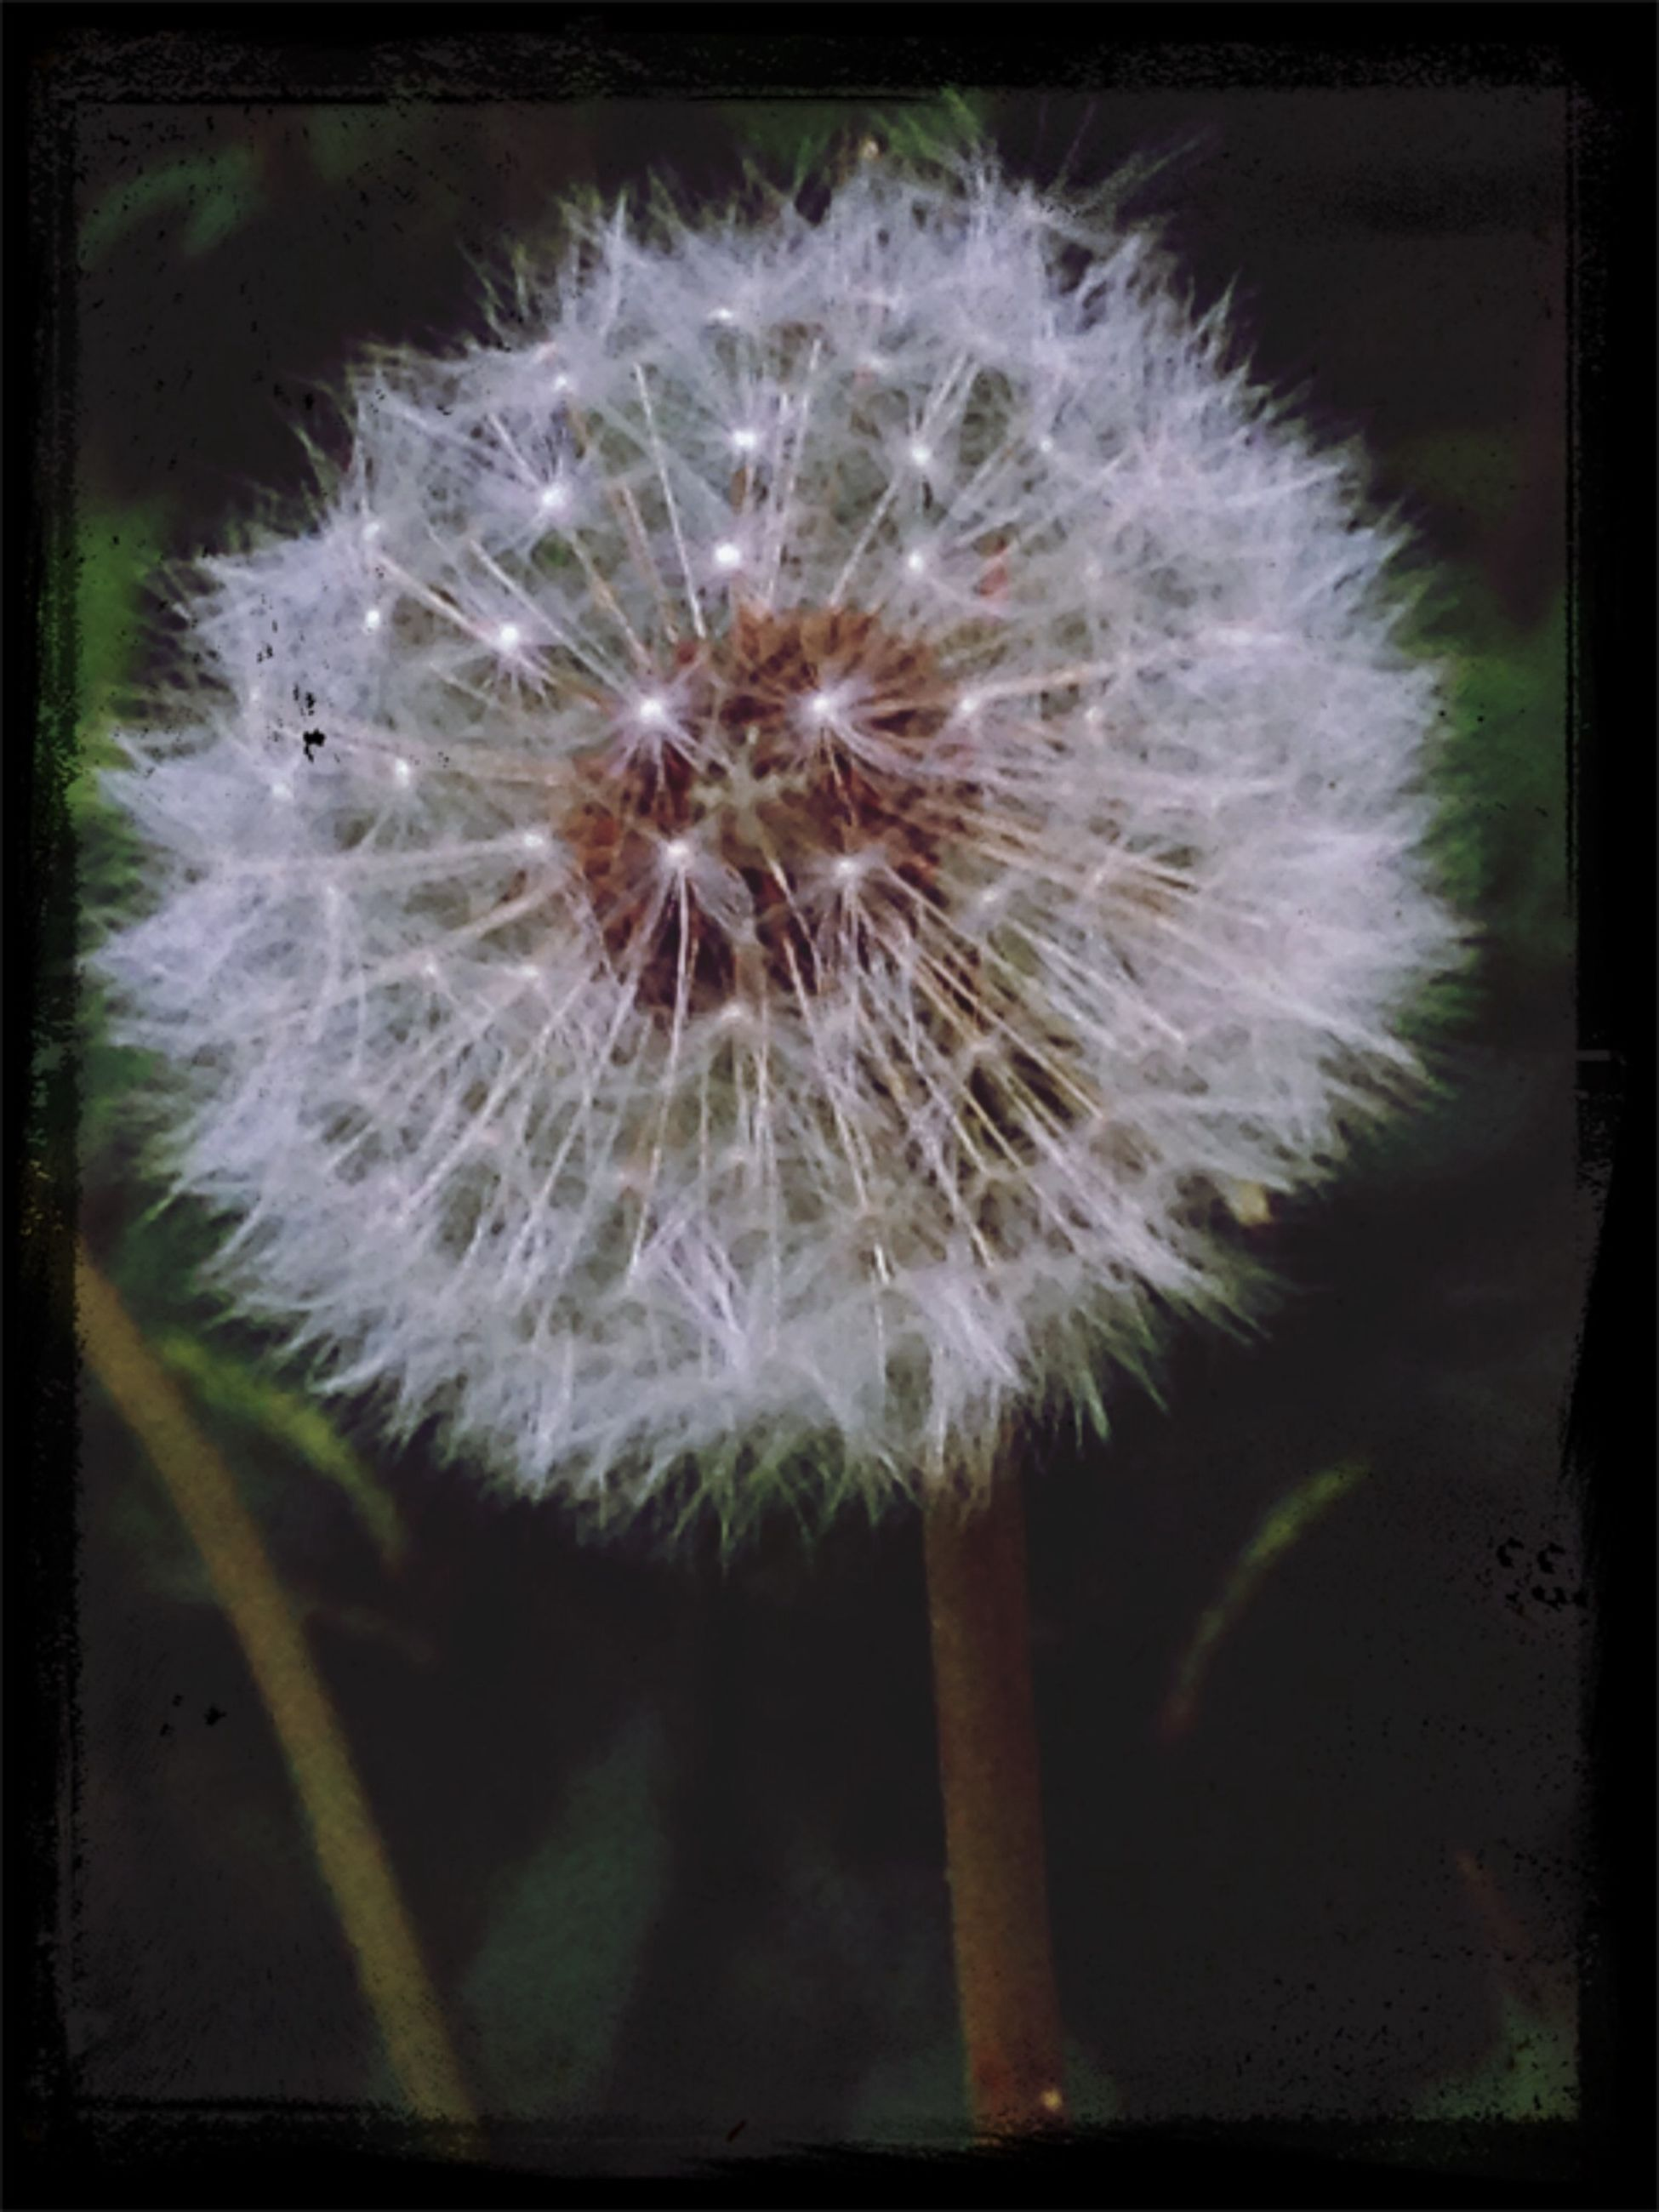 dandelion, flower, flower head, fragility, growth, freshness, close-up, single flower, beauty in nature, nature, transfer print, softness, white color, auto post production filter, focus on foreground, stem, wildflower, dandelion seed, plant, uncultivated